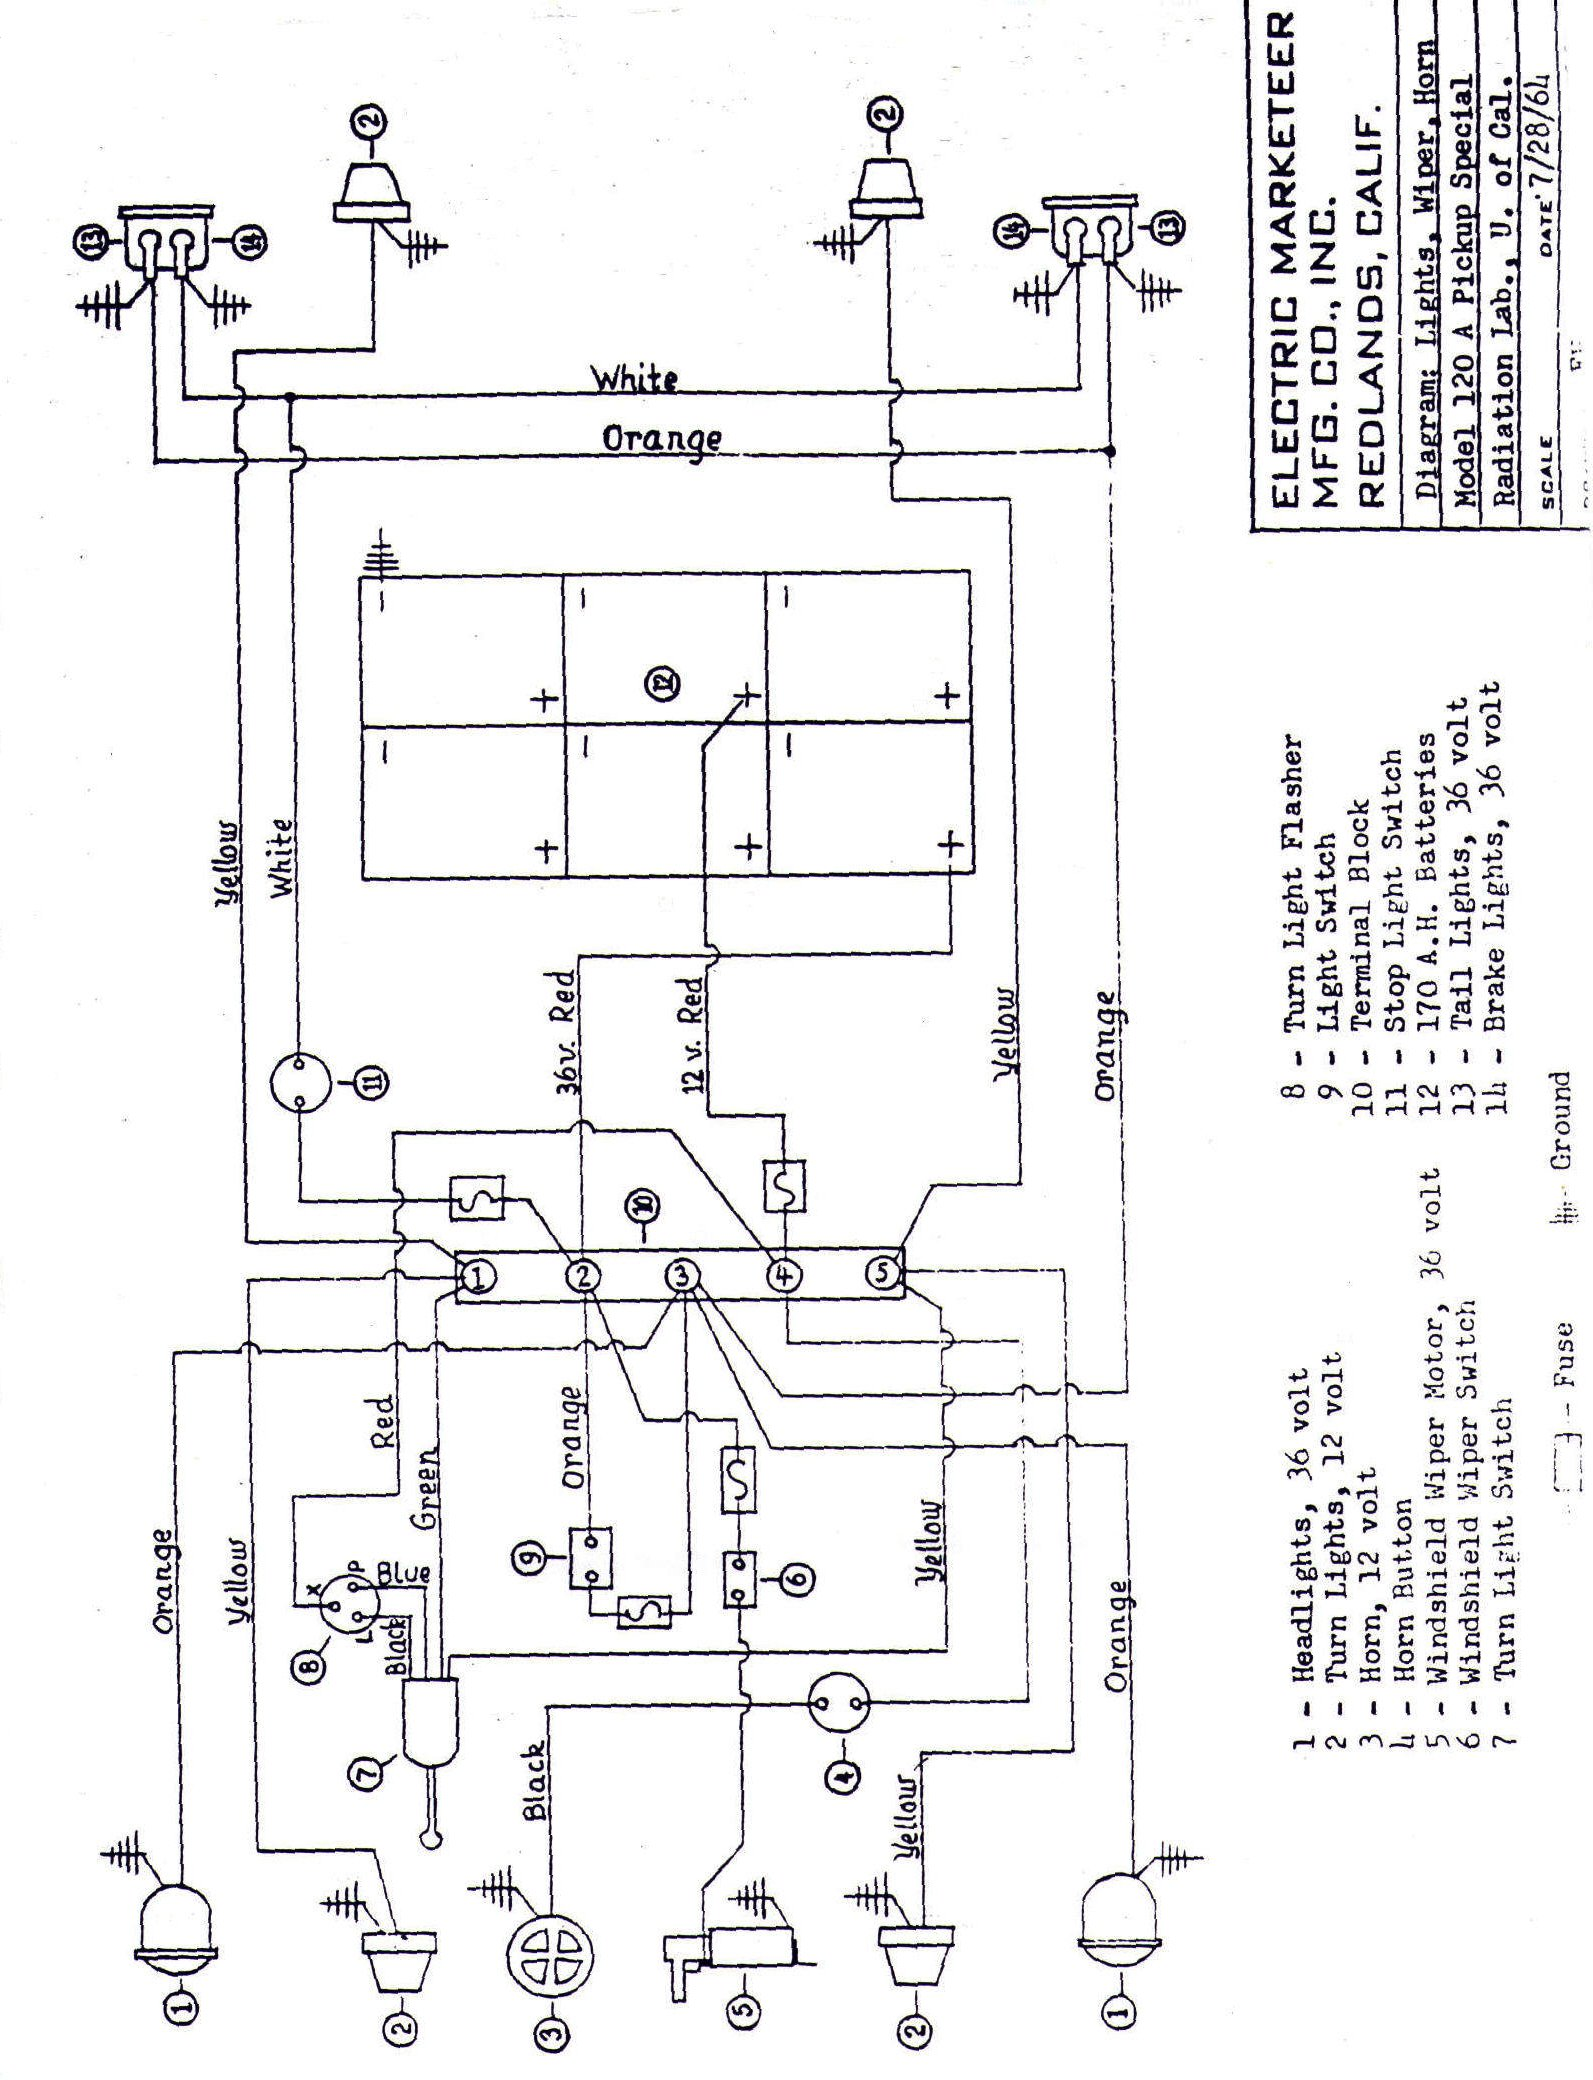 hight resolution of  12 volt wiring diagram 7 light wiring diagram furthermore cushman golf cart wiring diagram onwiring diagram for cushman 898570a